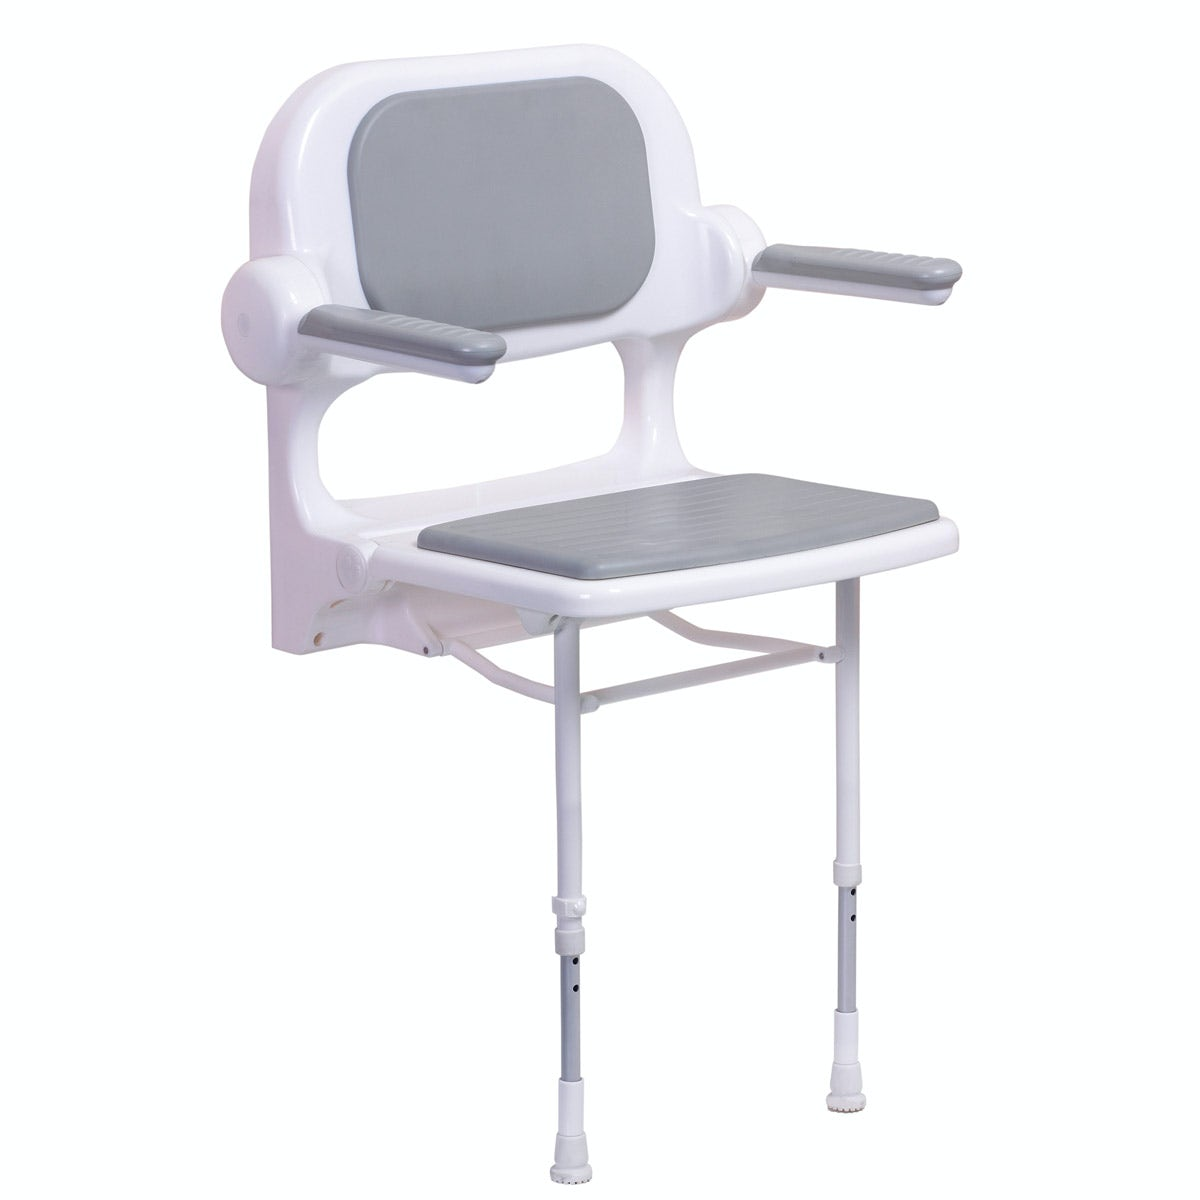 AKW 2000 series folding shower seat with back and arms and grey pad